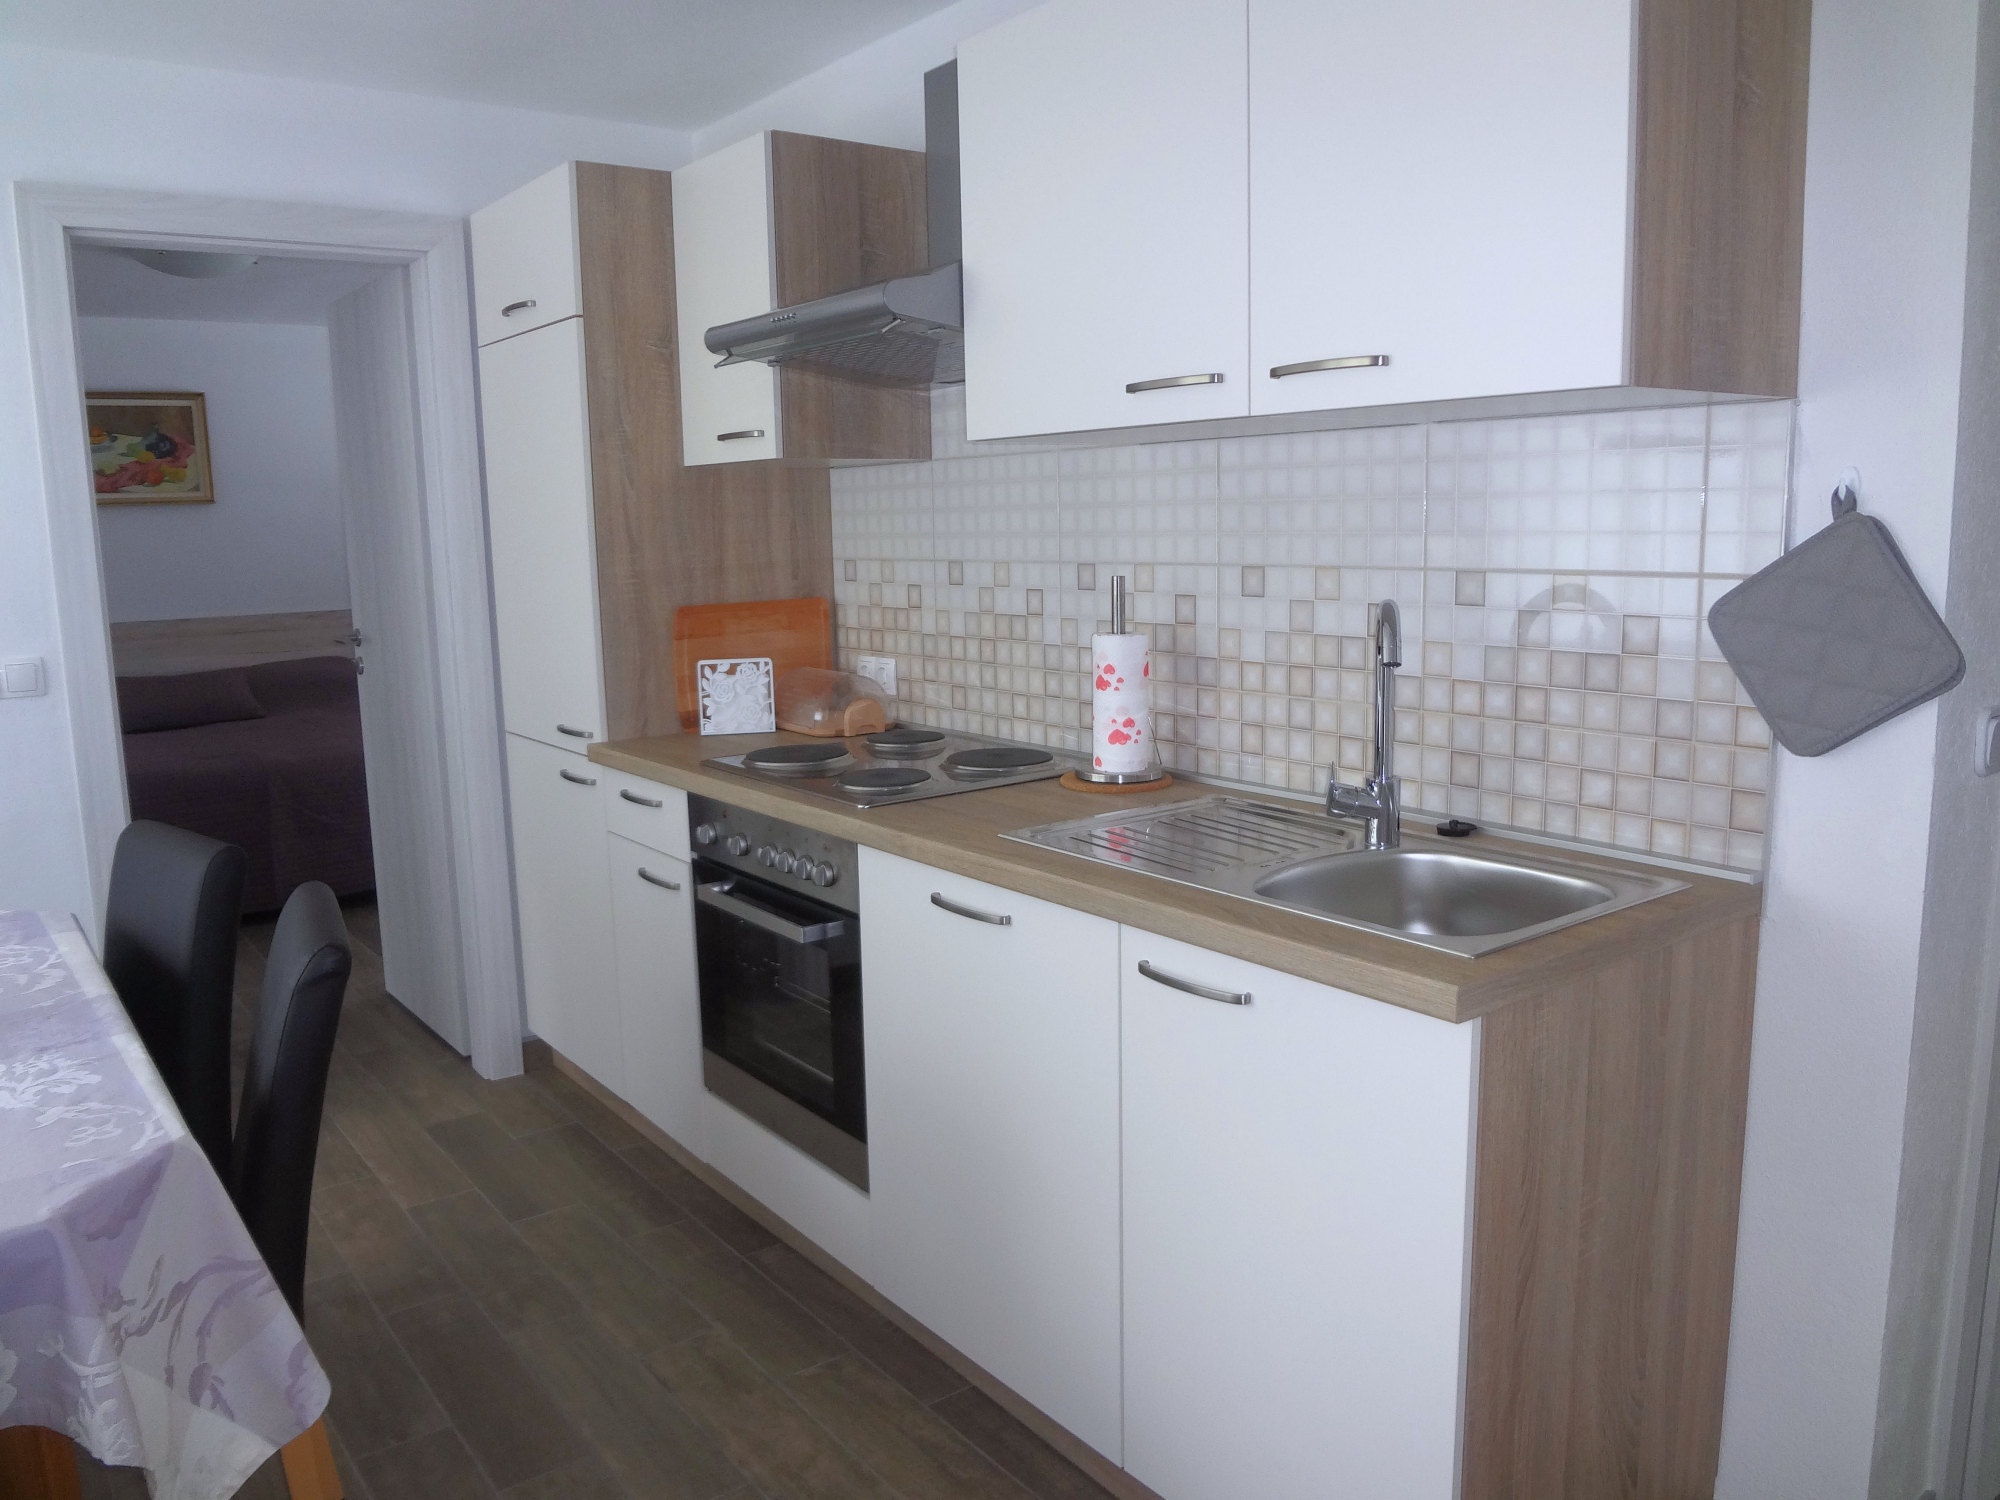 The kitchen of Apartments Fine Stay in the Gorenjska region of Slovenia